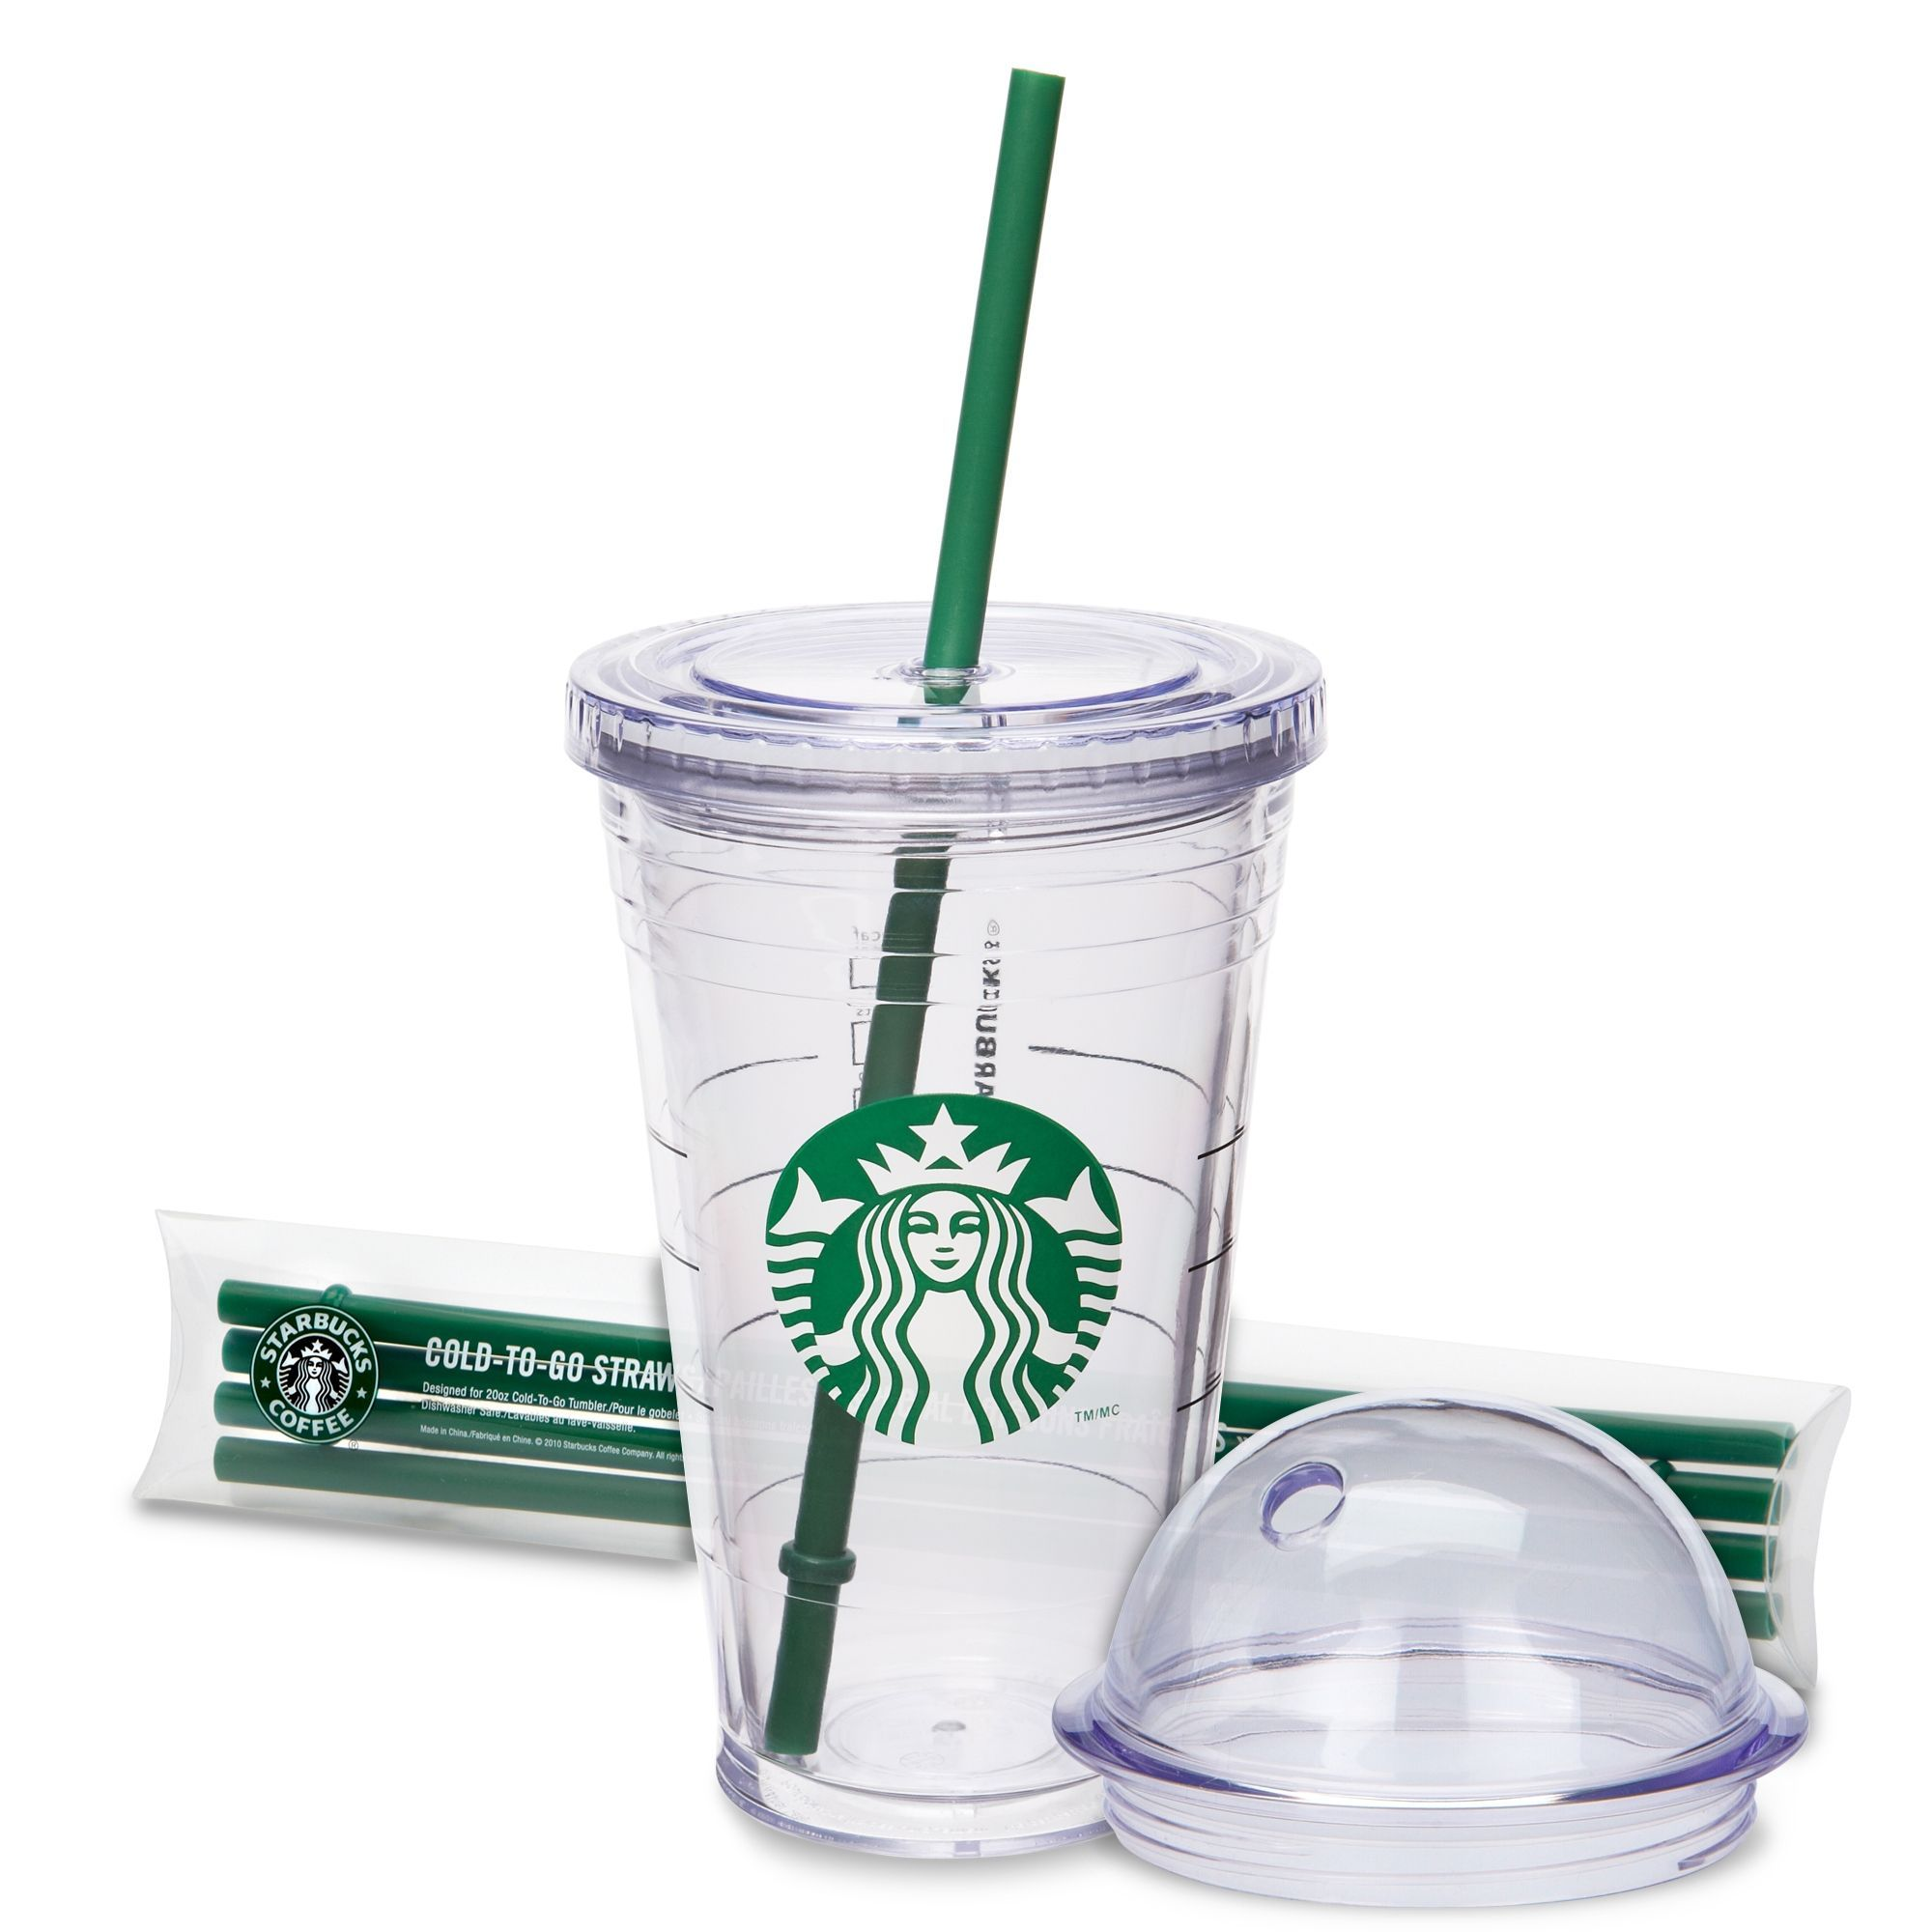 a74729ecfe3 16 oz Cold Cup Kit from Starbucks with domed lid and set of 4 reusable  straws. $13.95 [Although it is still plastic, at least it is a plastic cup  you can ...